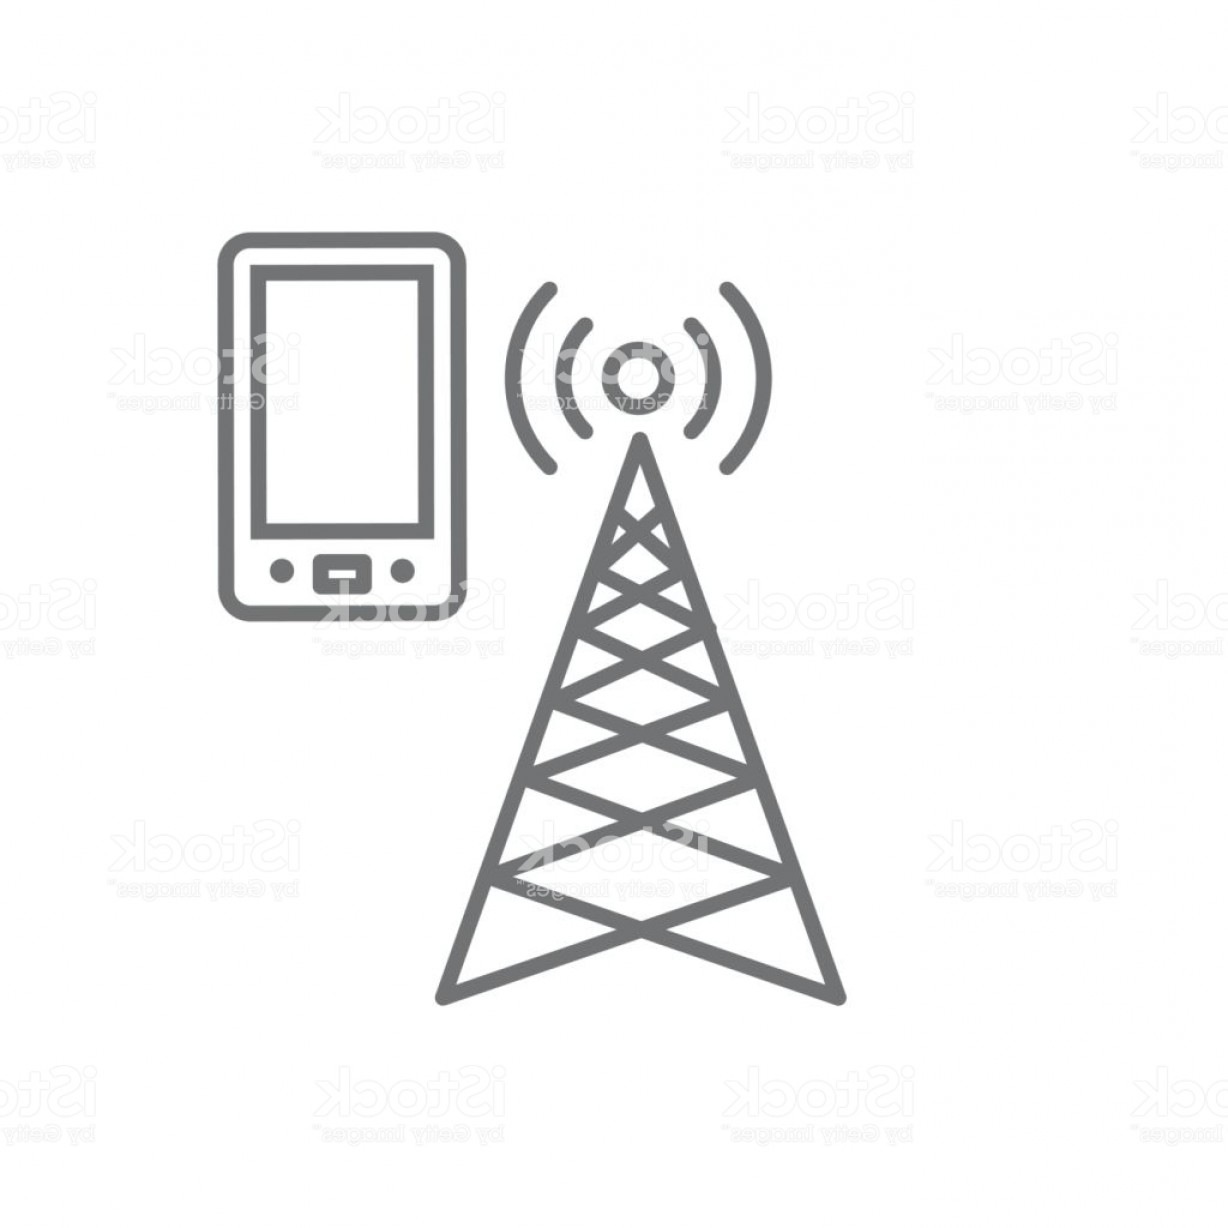 Vector Phone Tower: Cellphone Tower Icon With Emitting Pinging Transmission Waves Gm